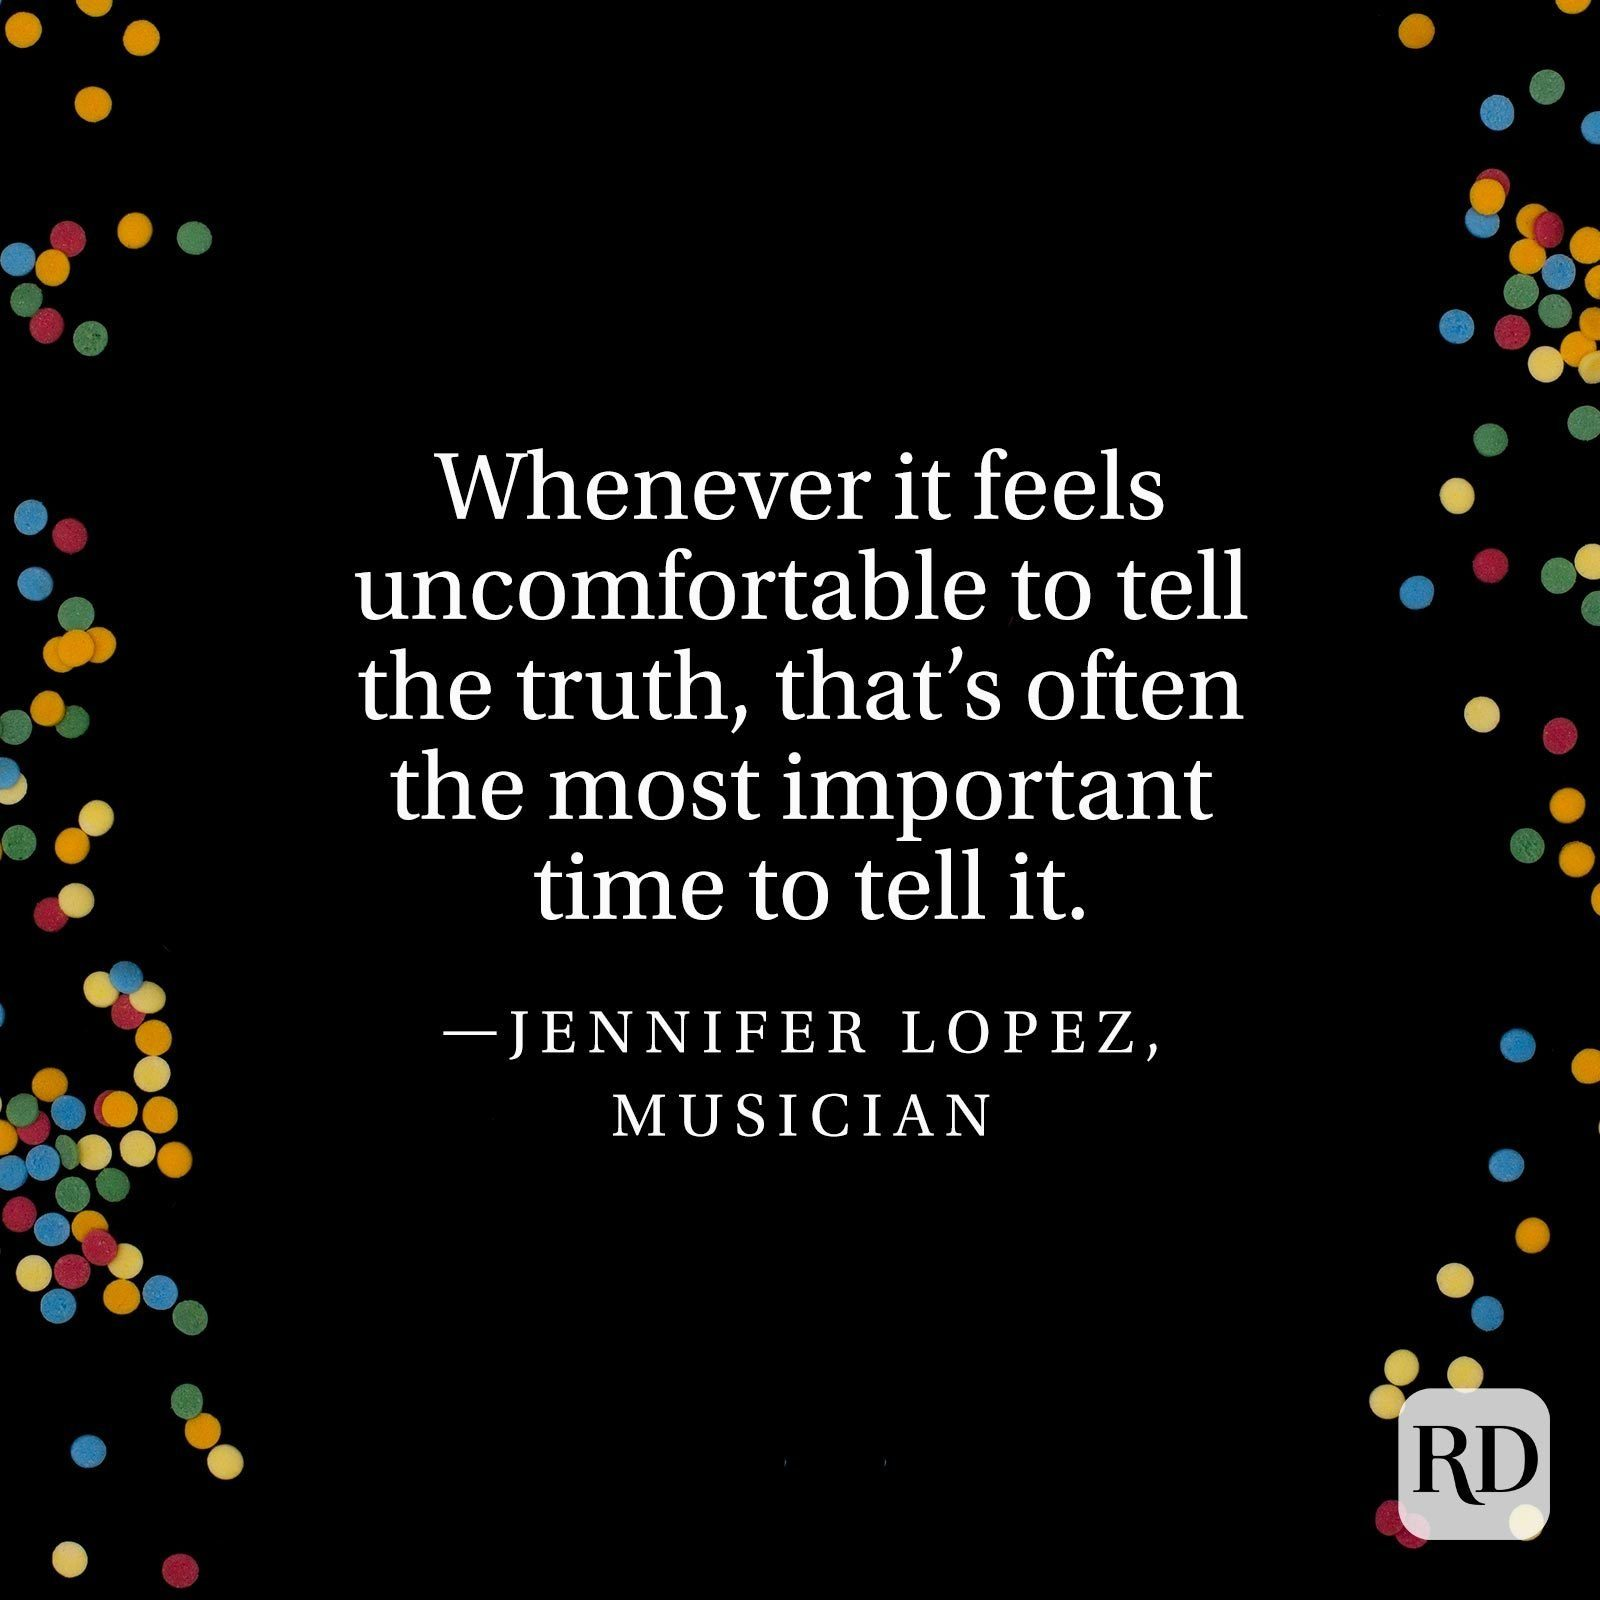 """""""Whenever it feels uncomfortable to tell the truth, that's often the most important time to tell it."""" —Jennifer Lopez, musician."""